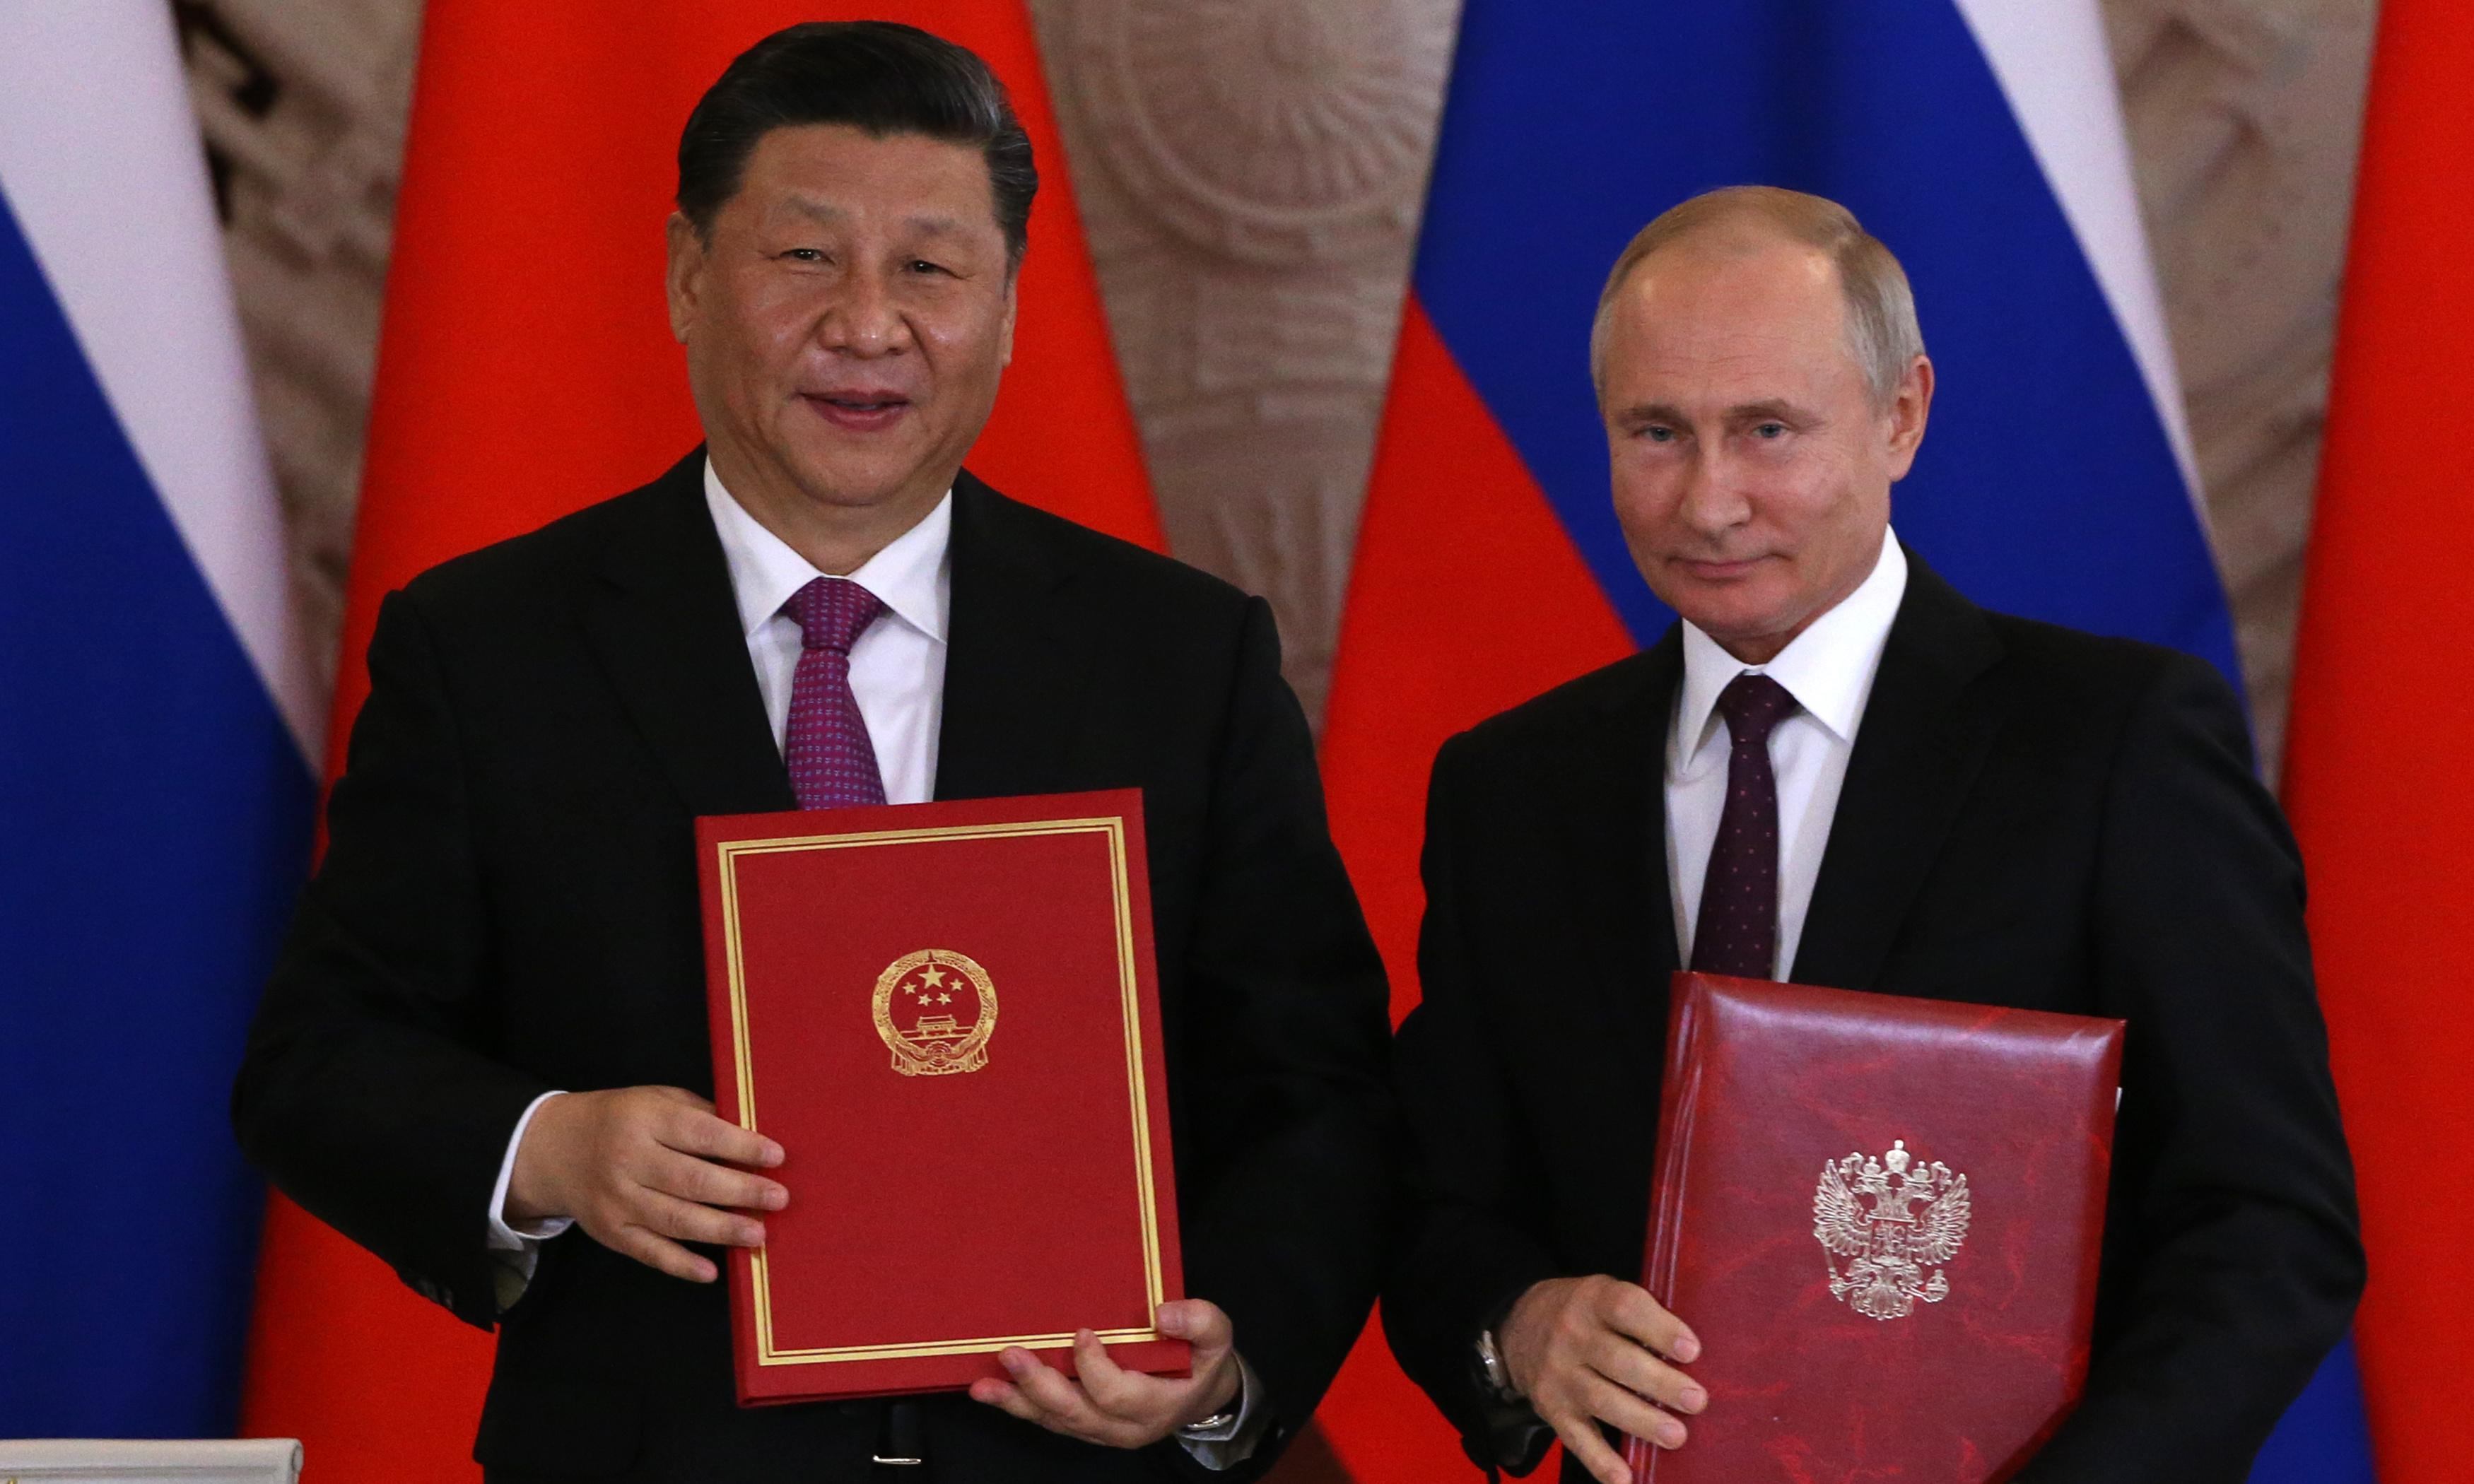 China's Huawei signs deal to develop 5G network in Russia